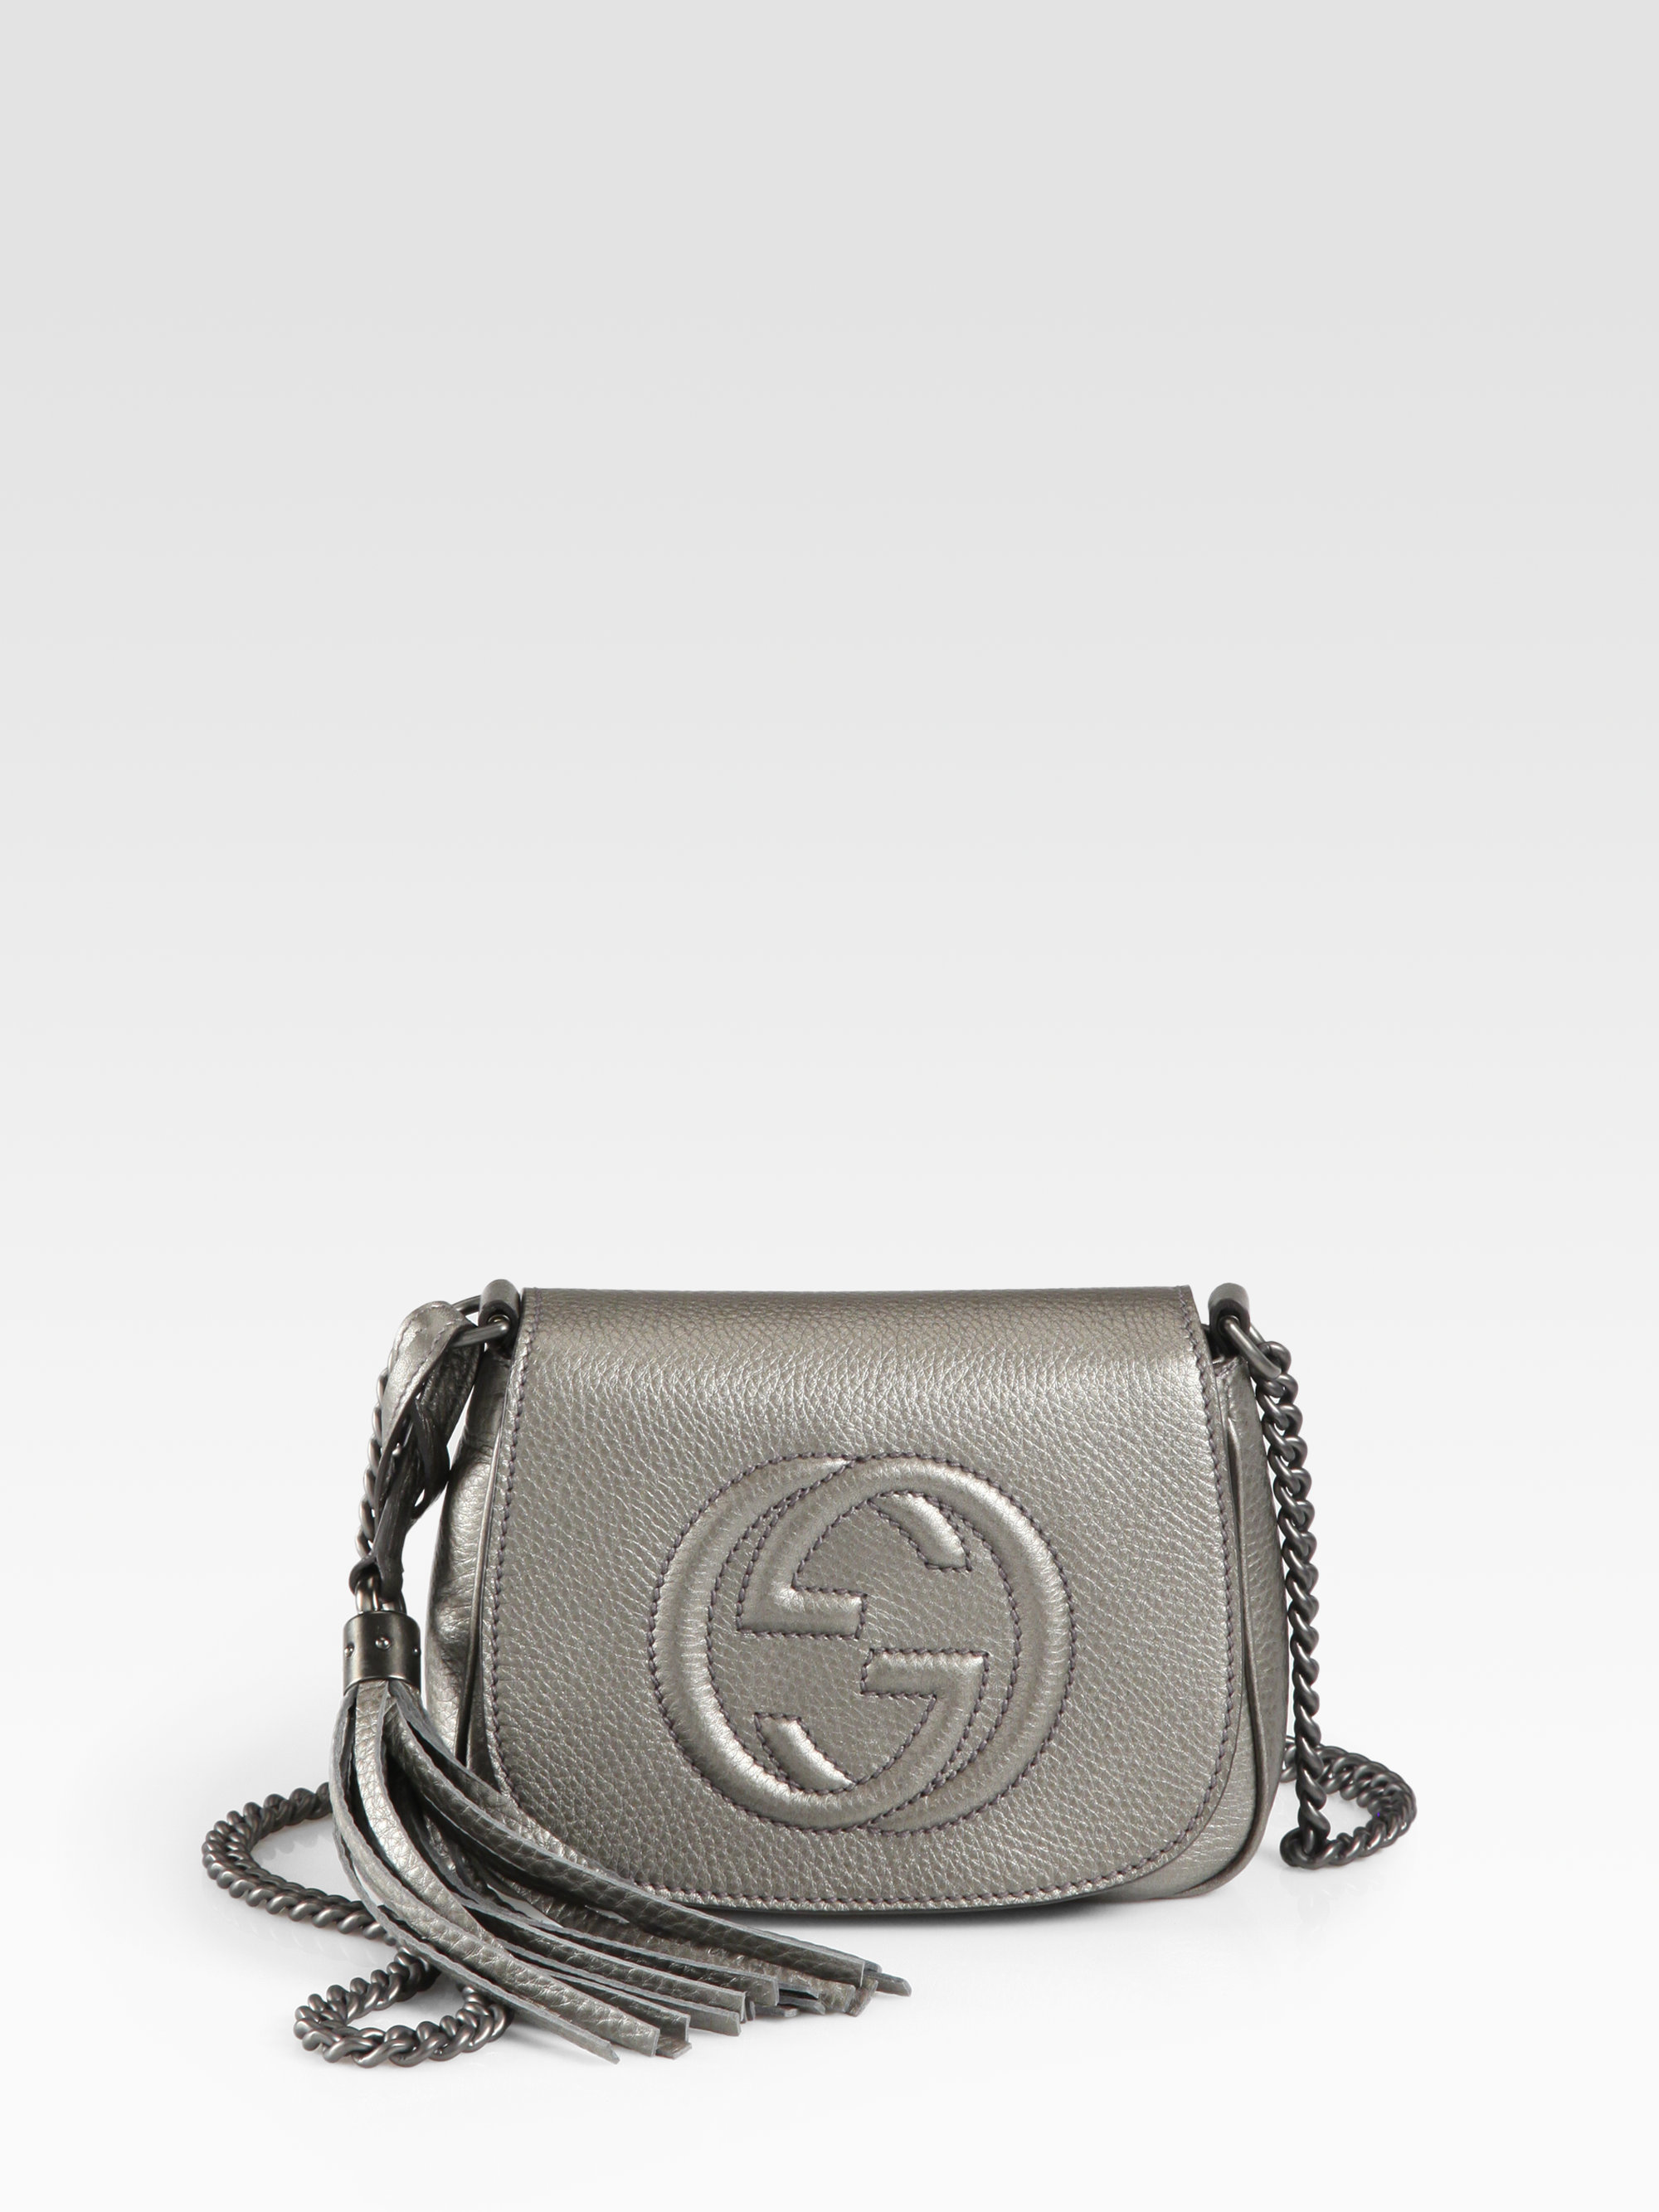 ec15f0330094 Lyst - Gucci Soho Metallic Leather Chain Shoulder Bag in Metallic